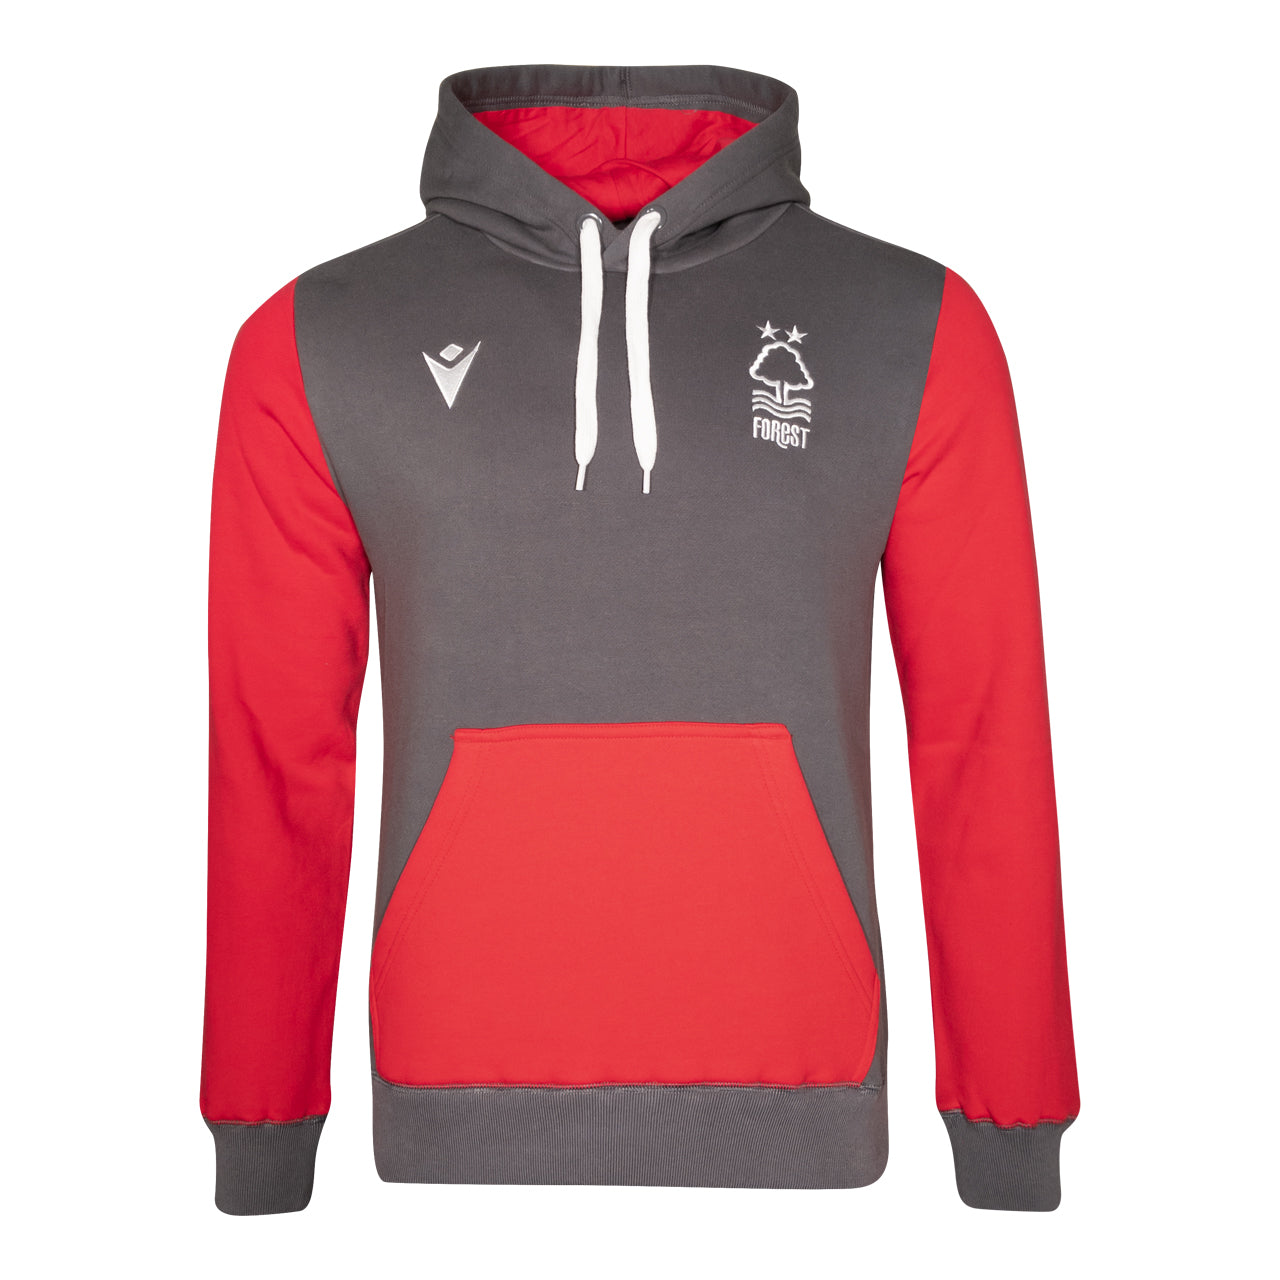 NFFC Junior Staff Training Hoodie 19/20